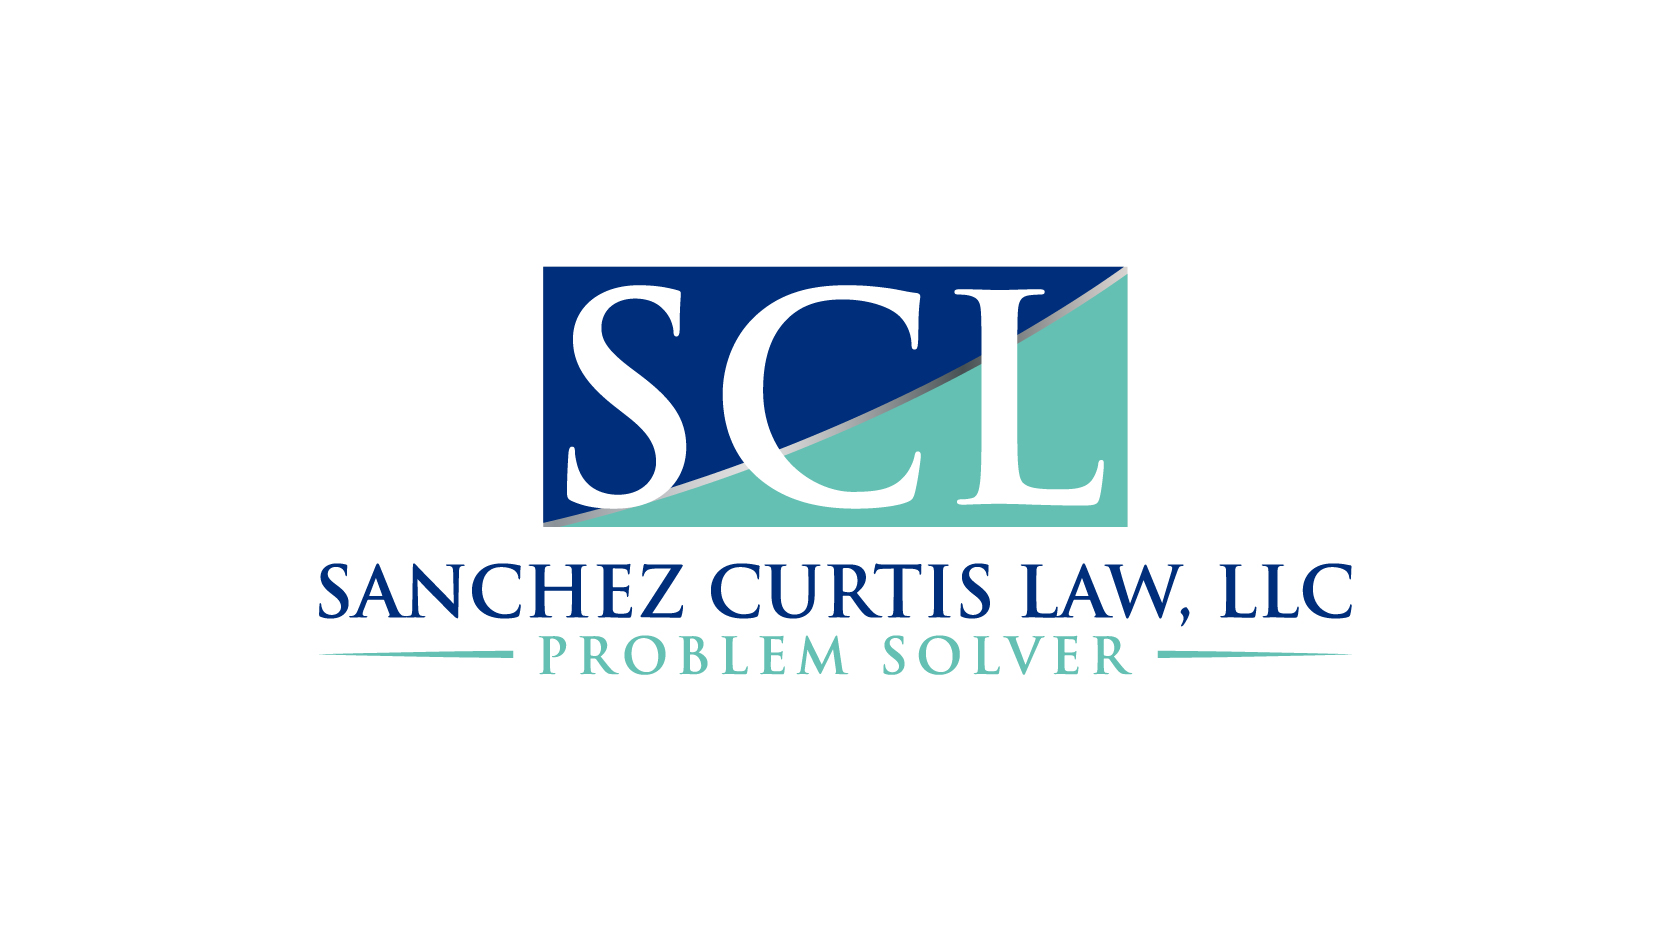 Sanchez Curtis Law LLC